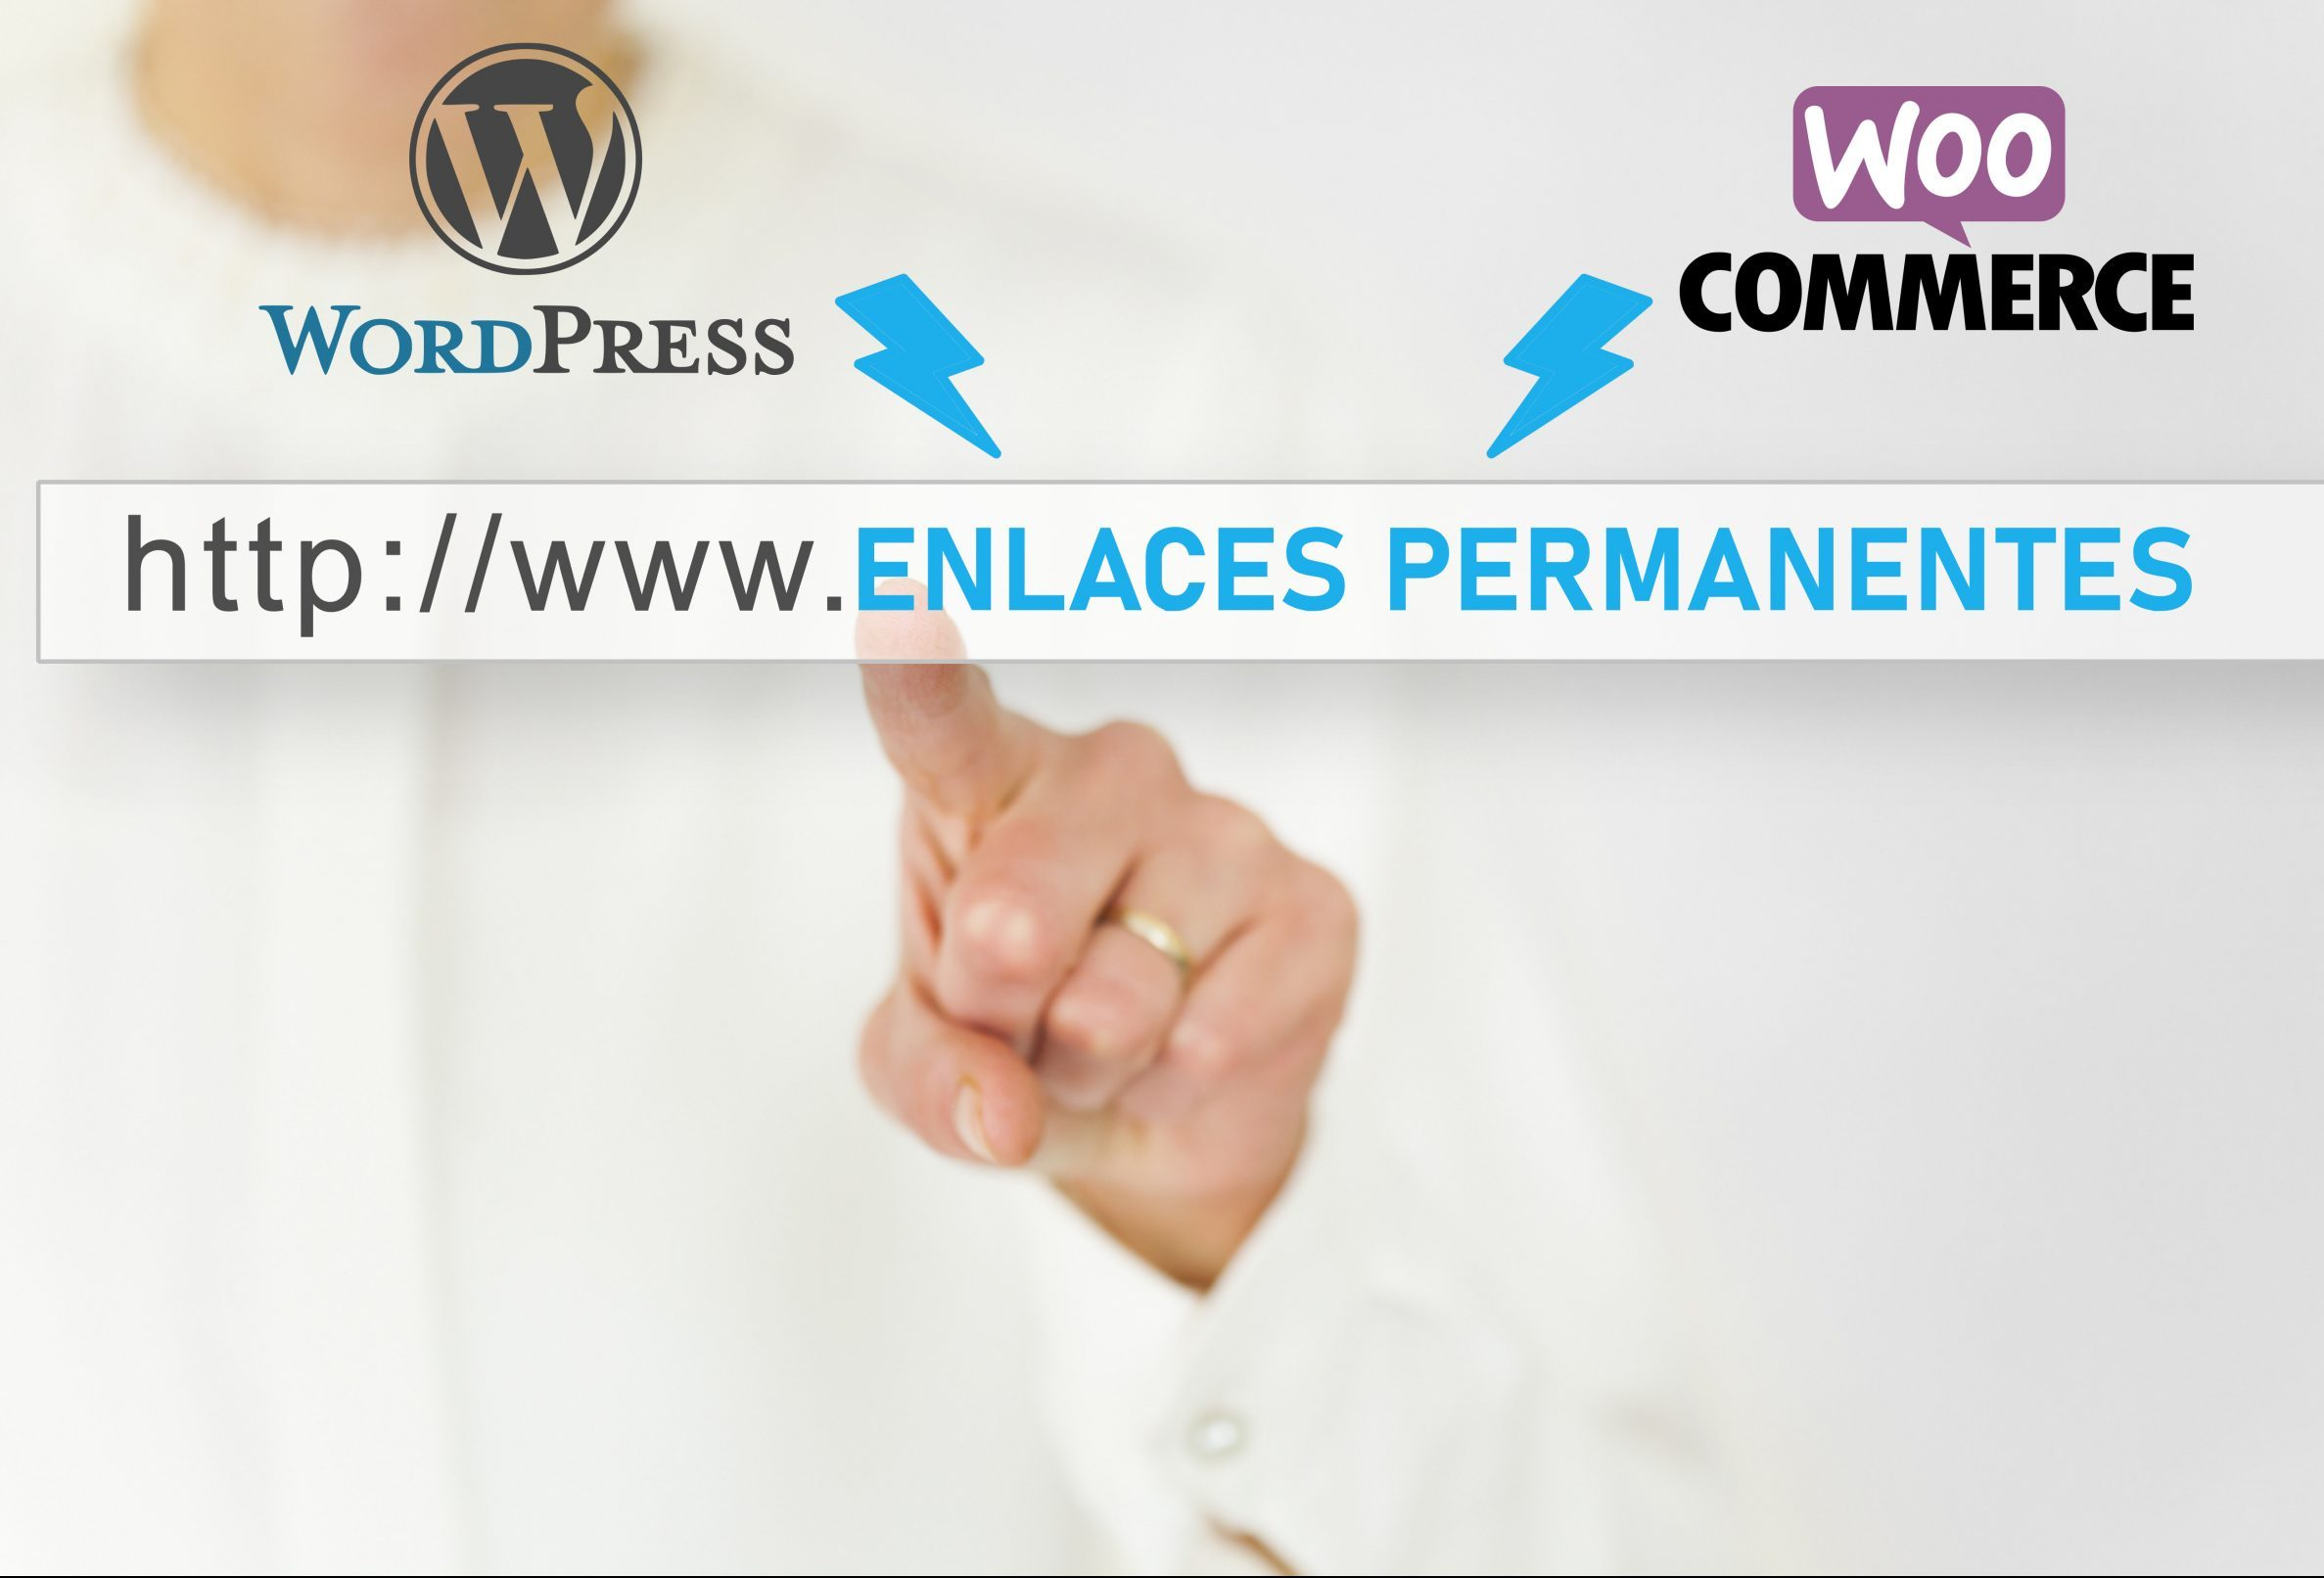 enlaces permanentes wooocommerce